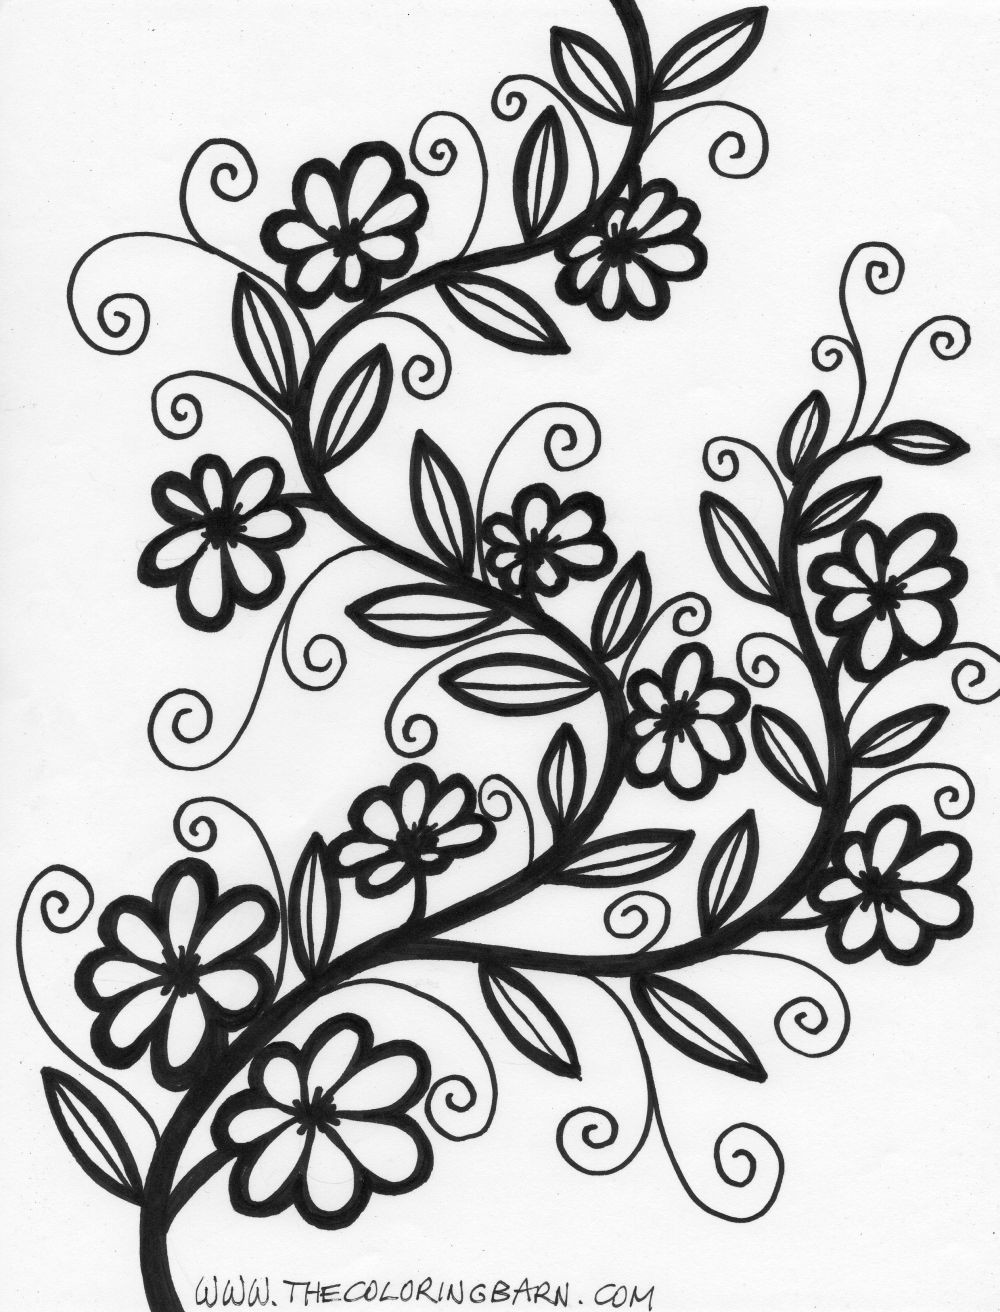 Flowers Coloring Sheet  Flower Coloring Pages Bestofcoloring